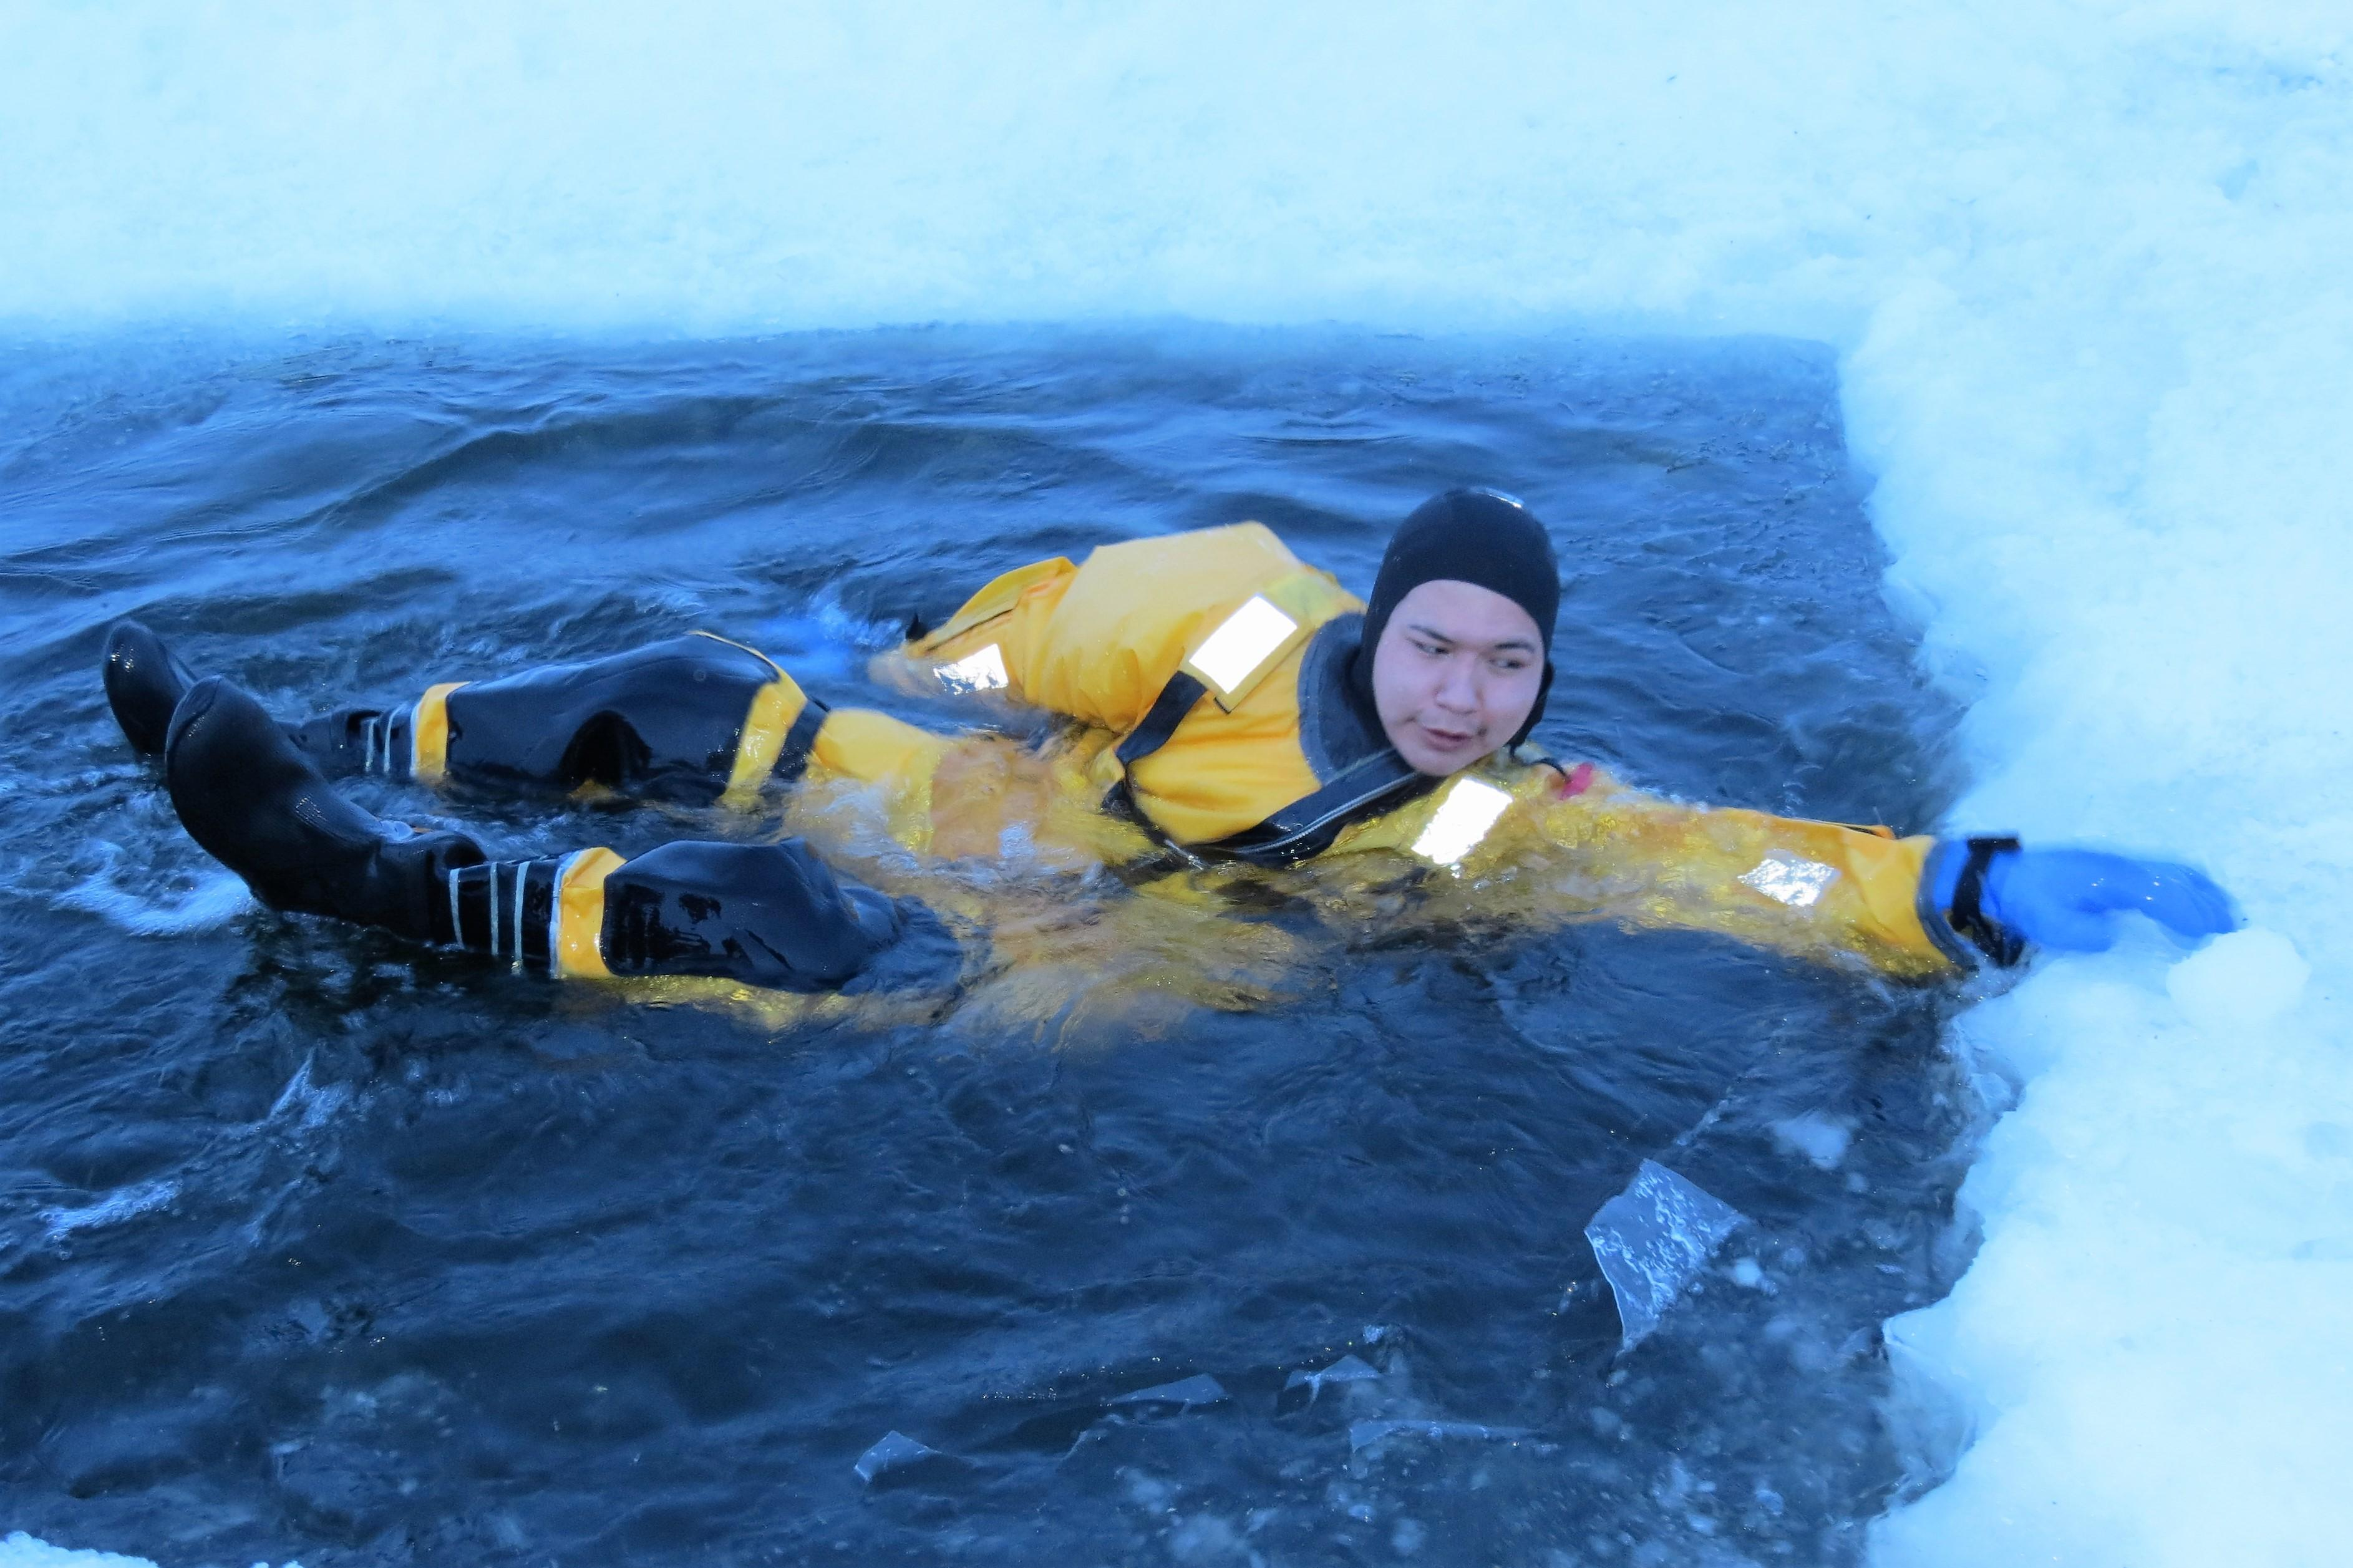 Sachigo Lake First Nation's Ranger Harry McKay wears an immersion suit during an ice rescue training session in Sandy Lake First Nation, Ontario on February 5, 2017.